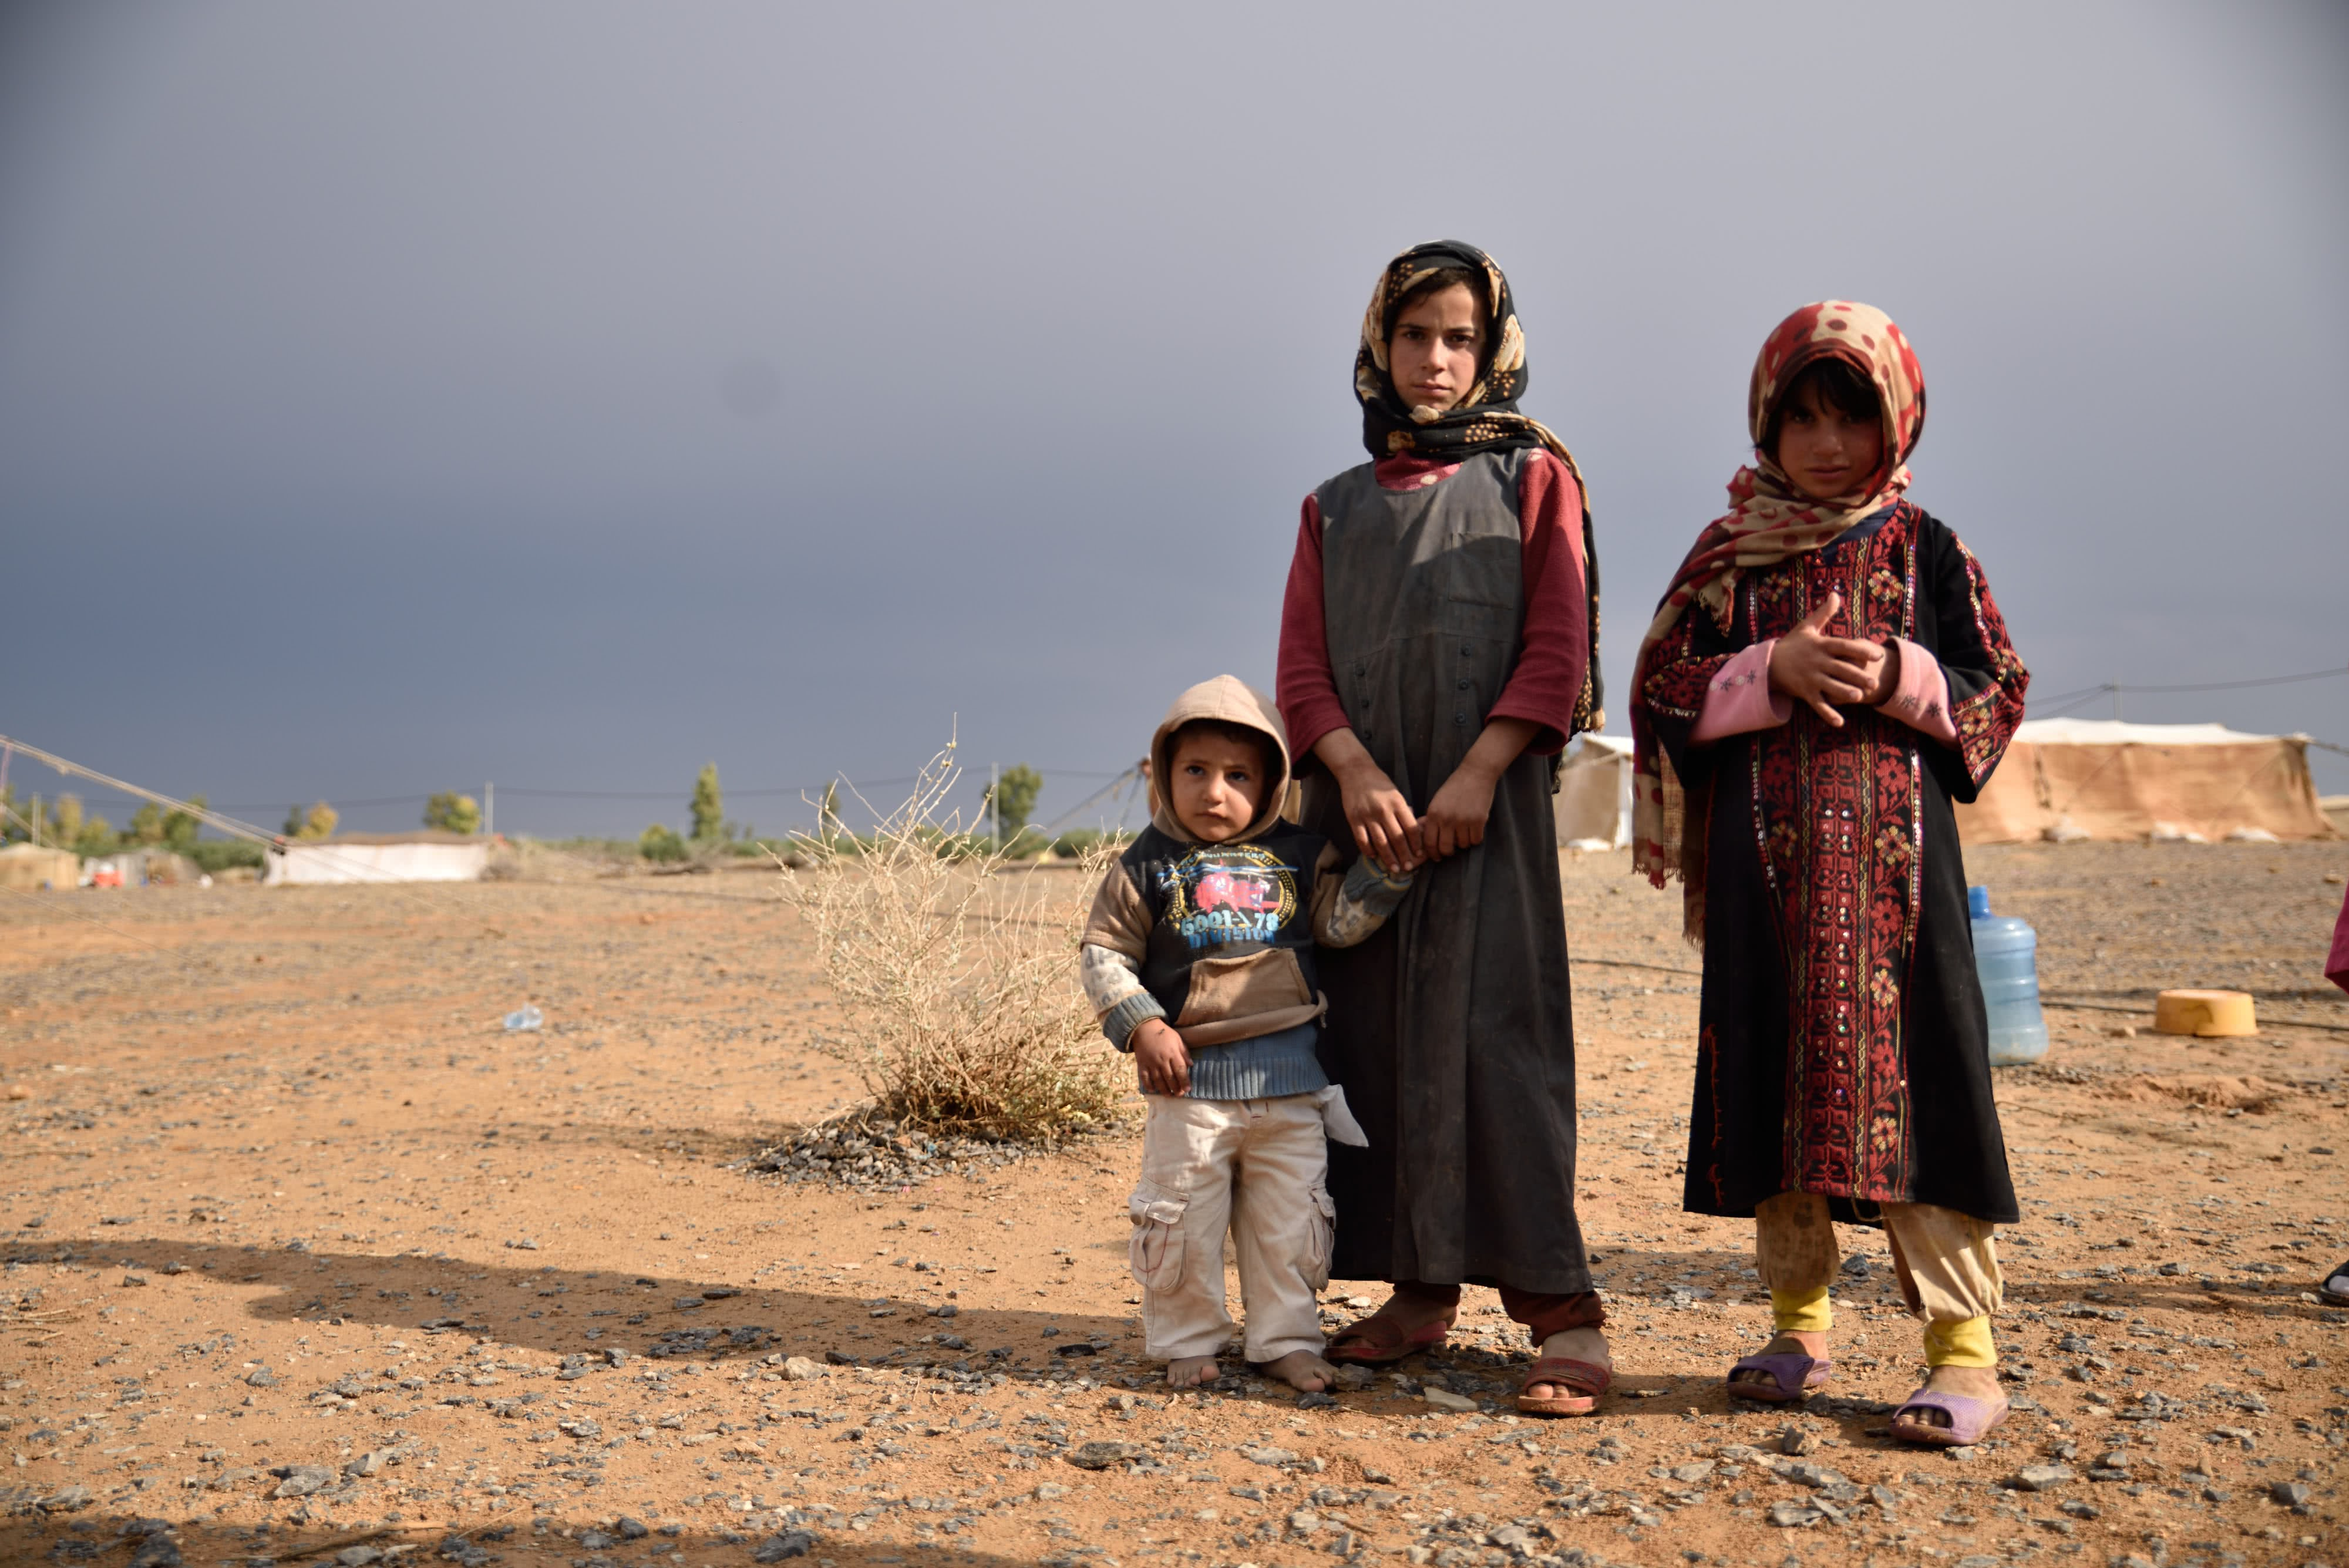 3 young Syrian girls standing in the middle of no where looking at the camera with sadness